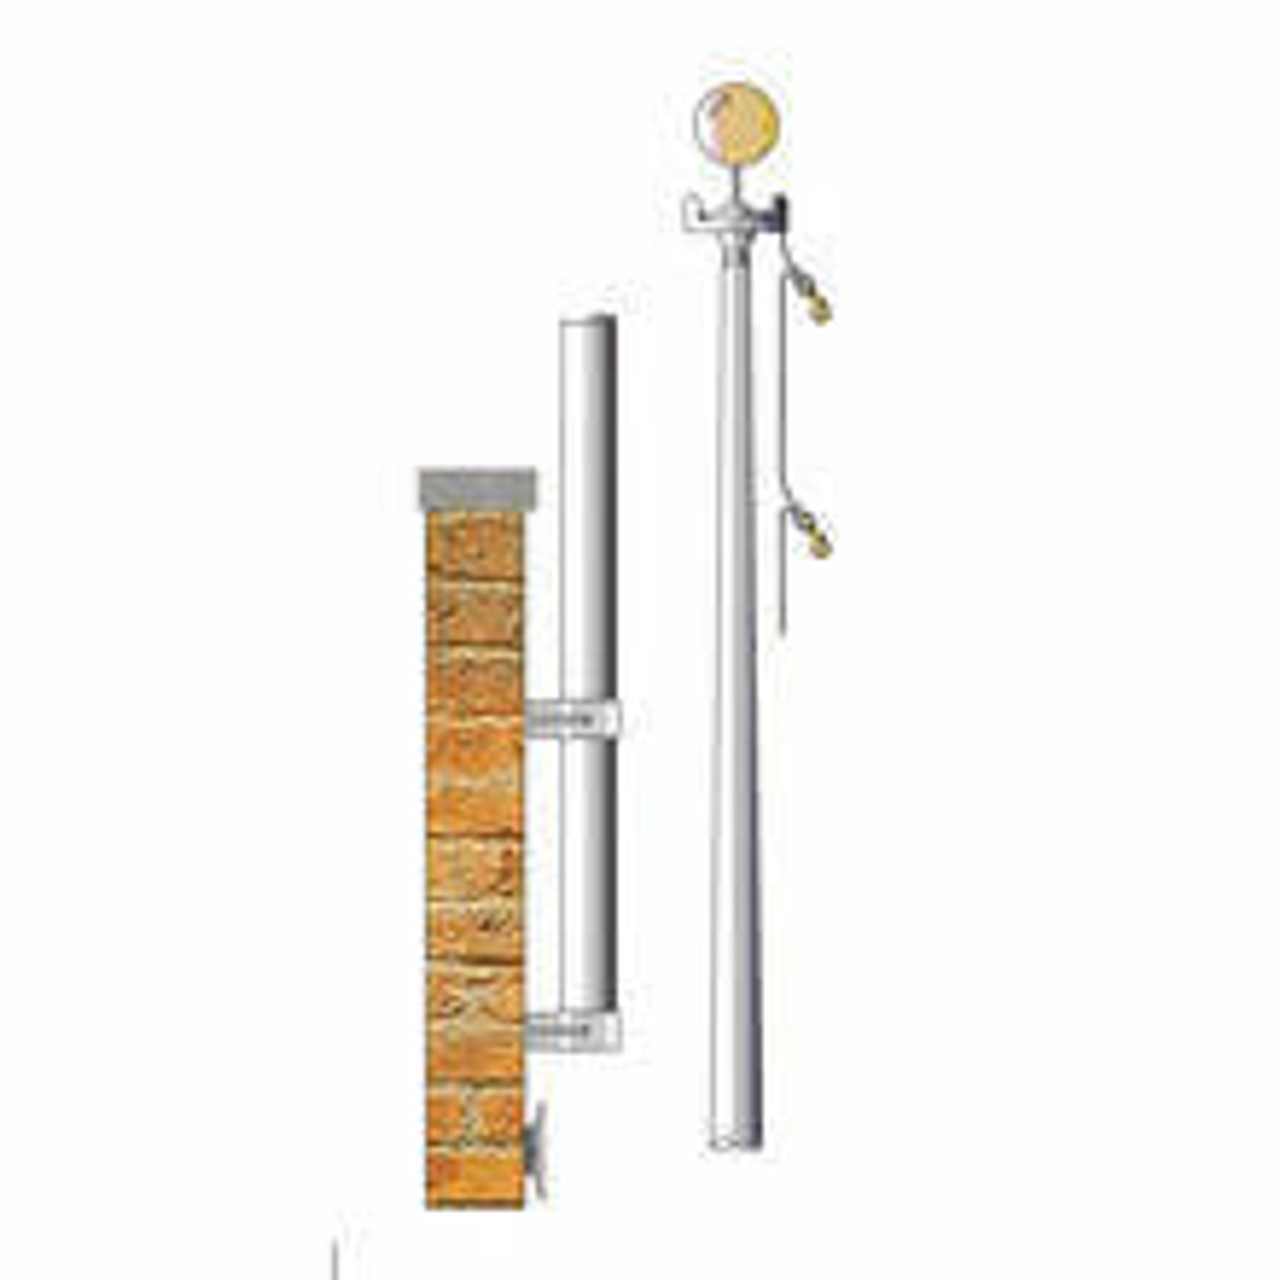 Design of a 12 Vertical Wall Mounted Flagpole EVW12 with a metallic pole mounted to a brick wall next to a metallic pole with a halyard attached to a truck and a gold finial.